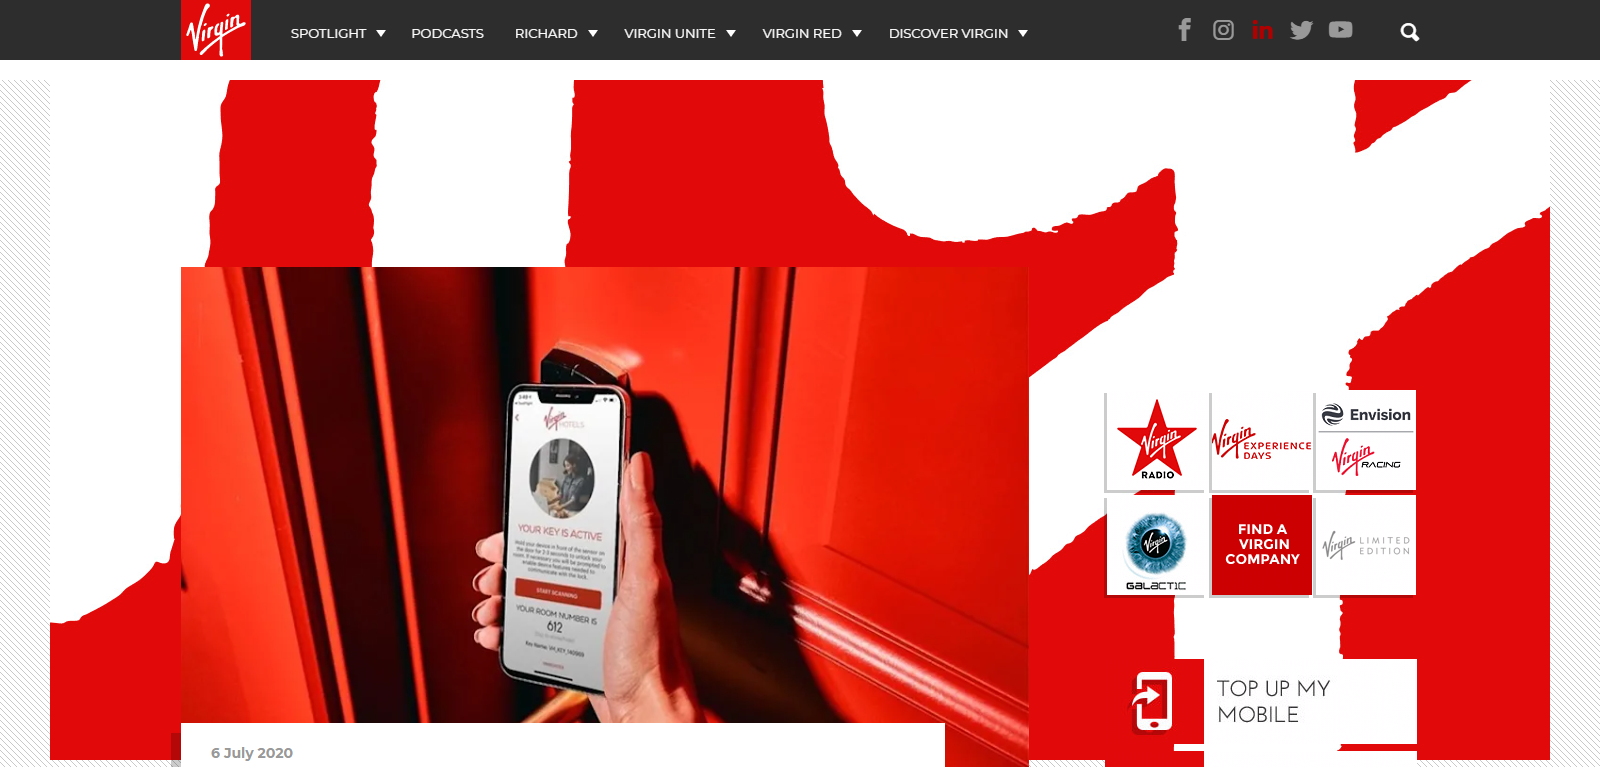 Virgin America website design